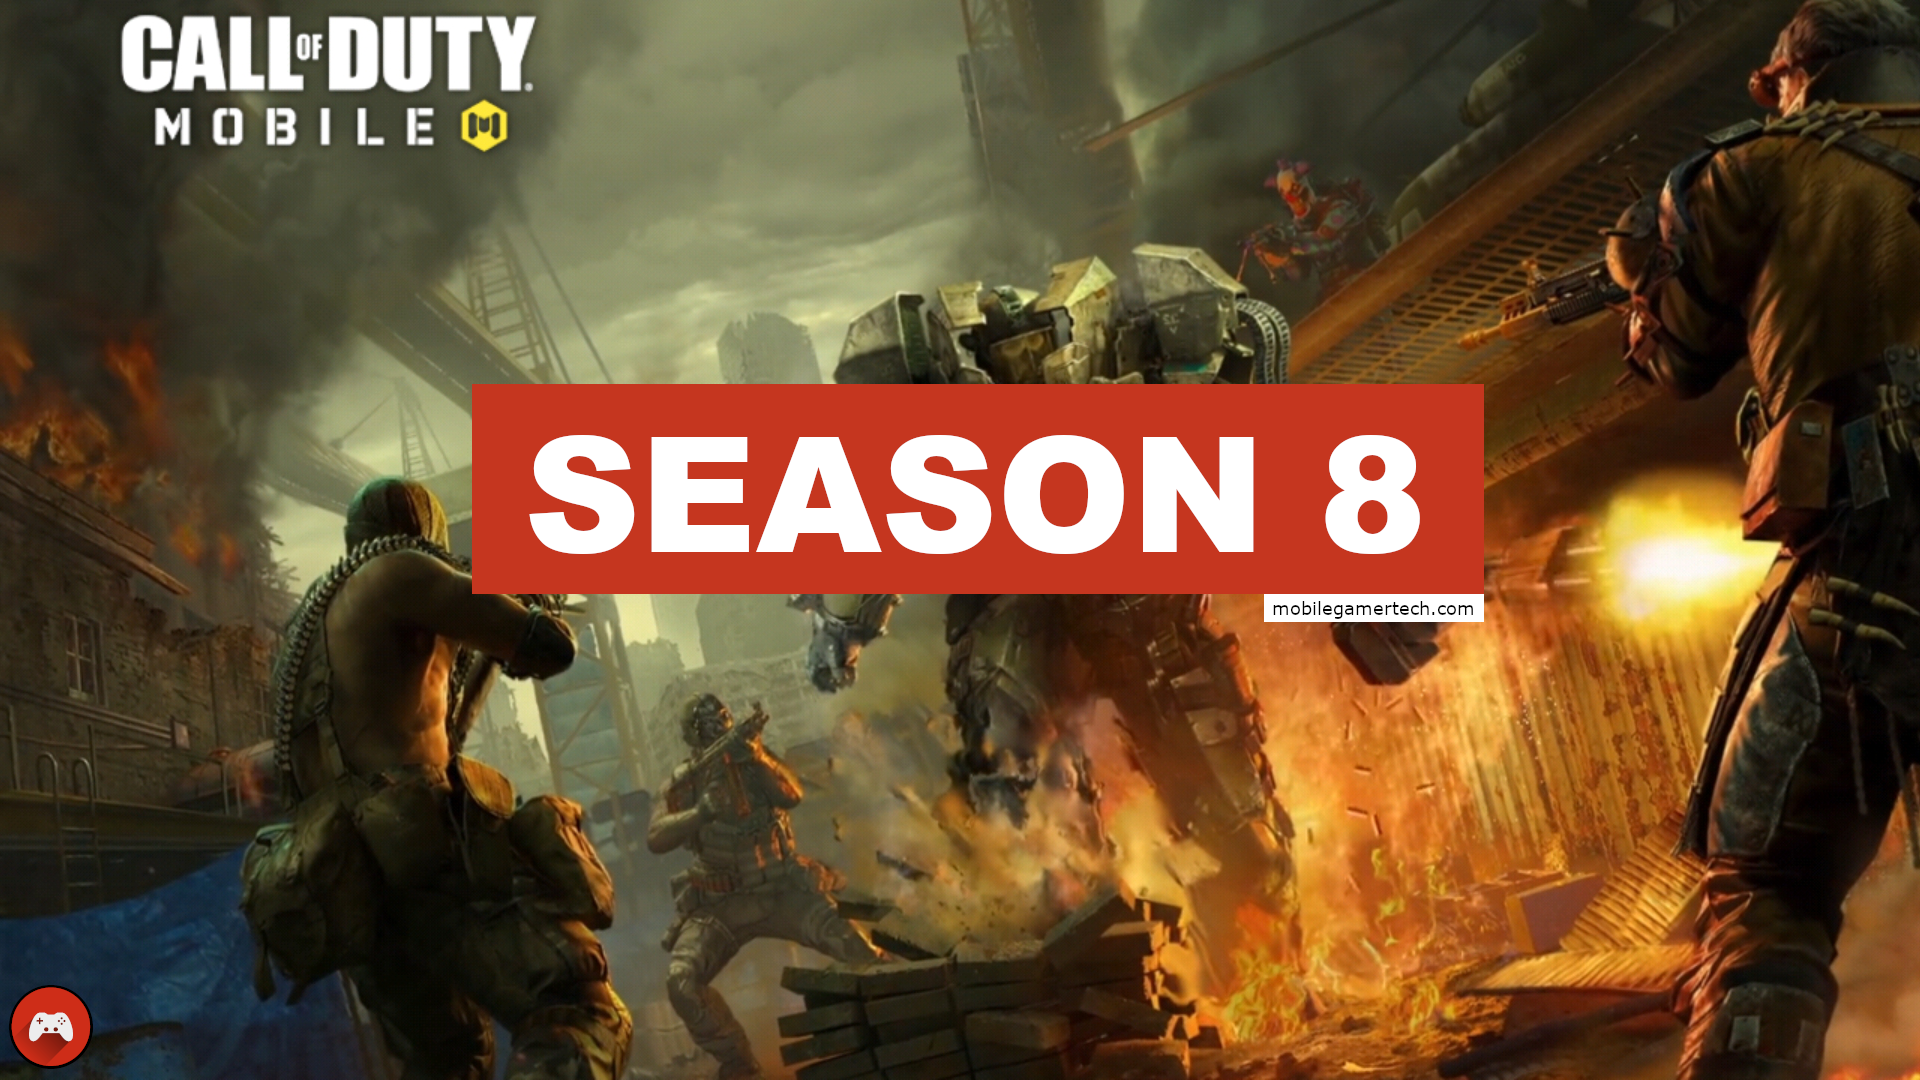 Season 8 - Call of Duty: Mobile